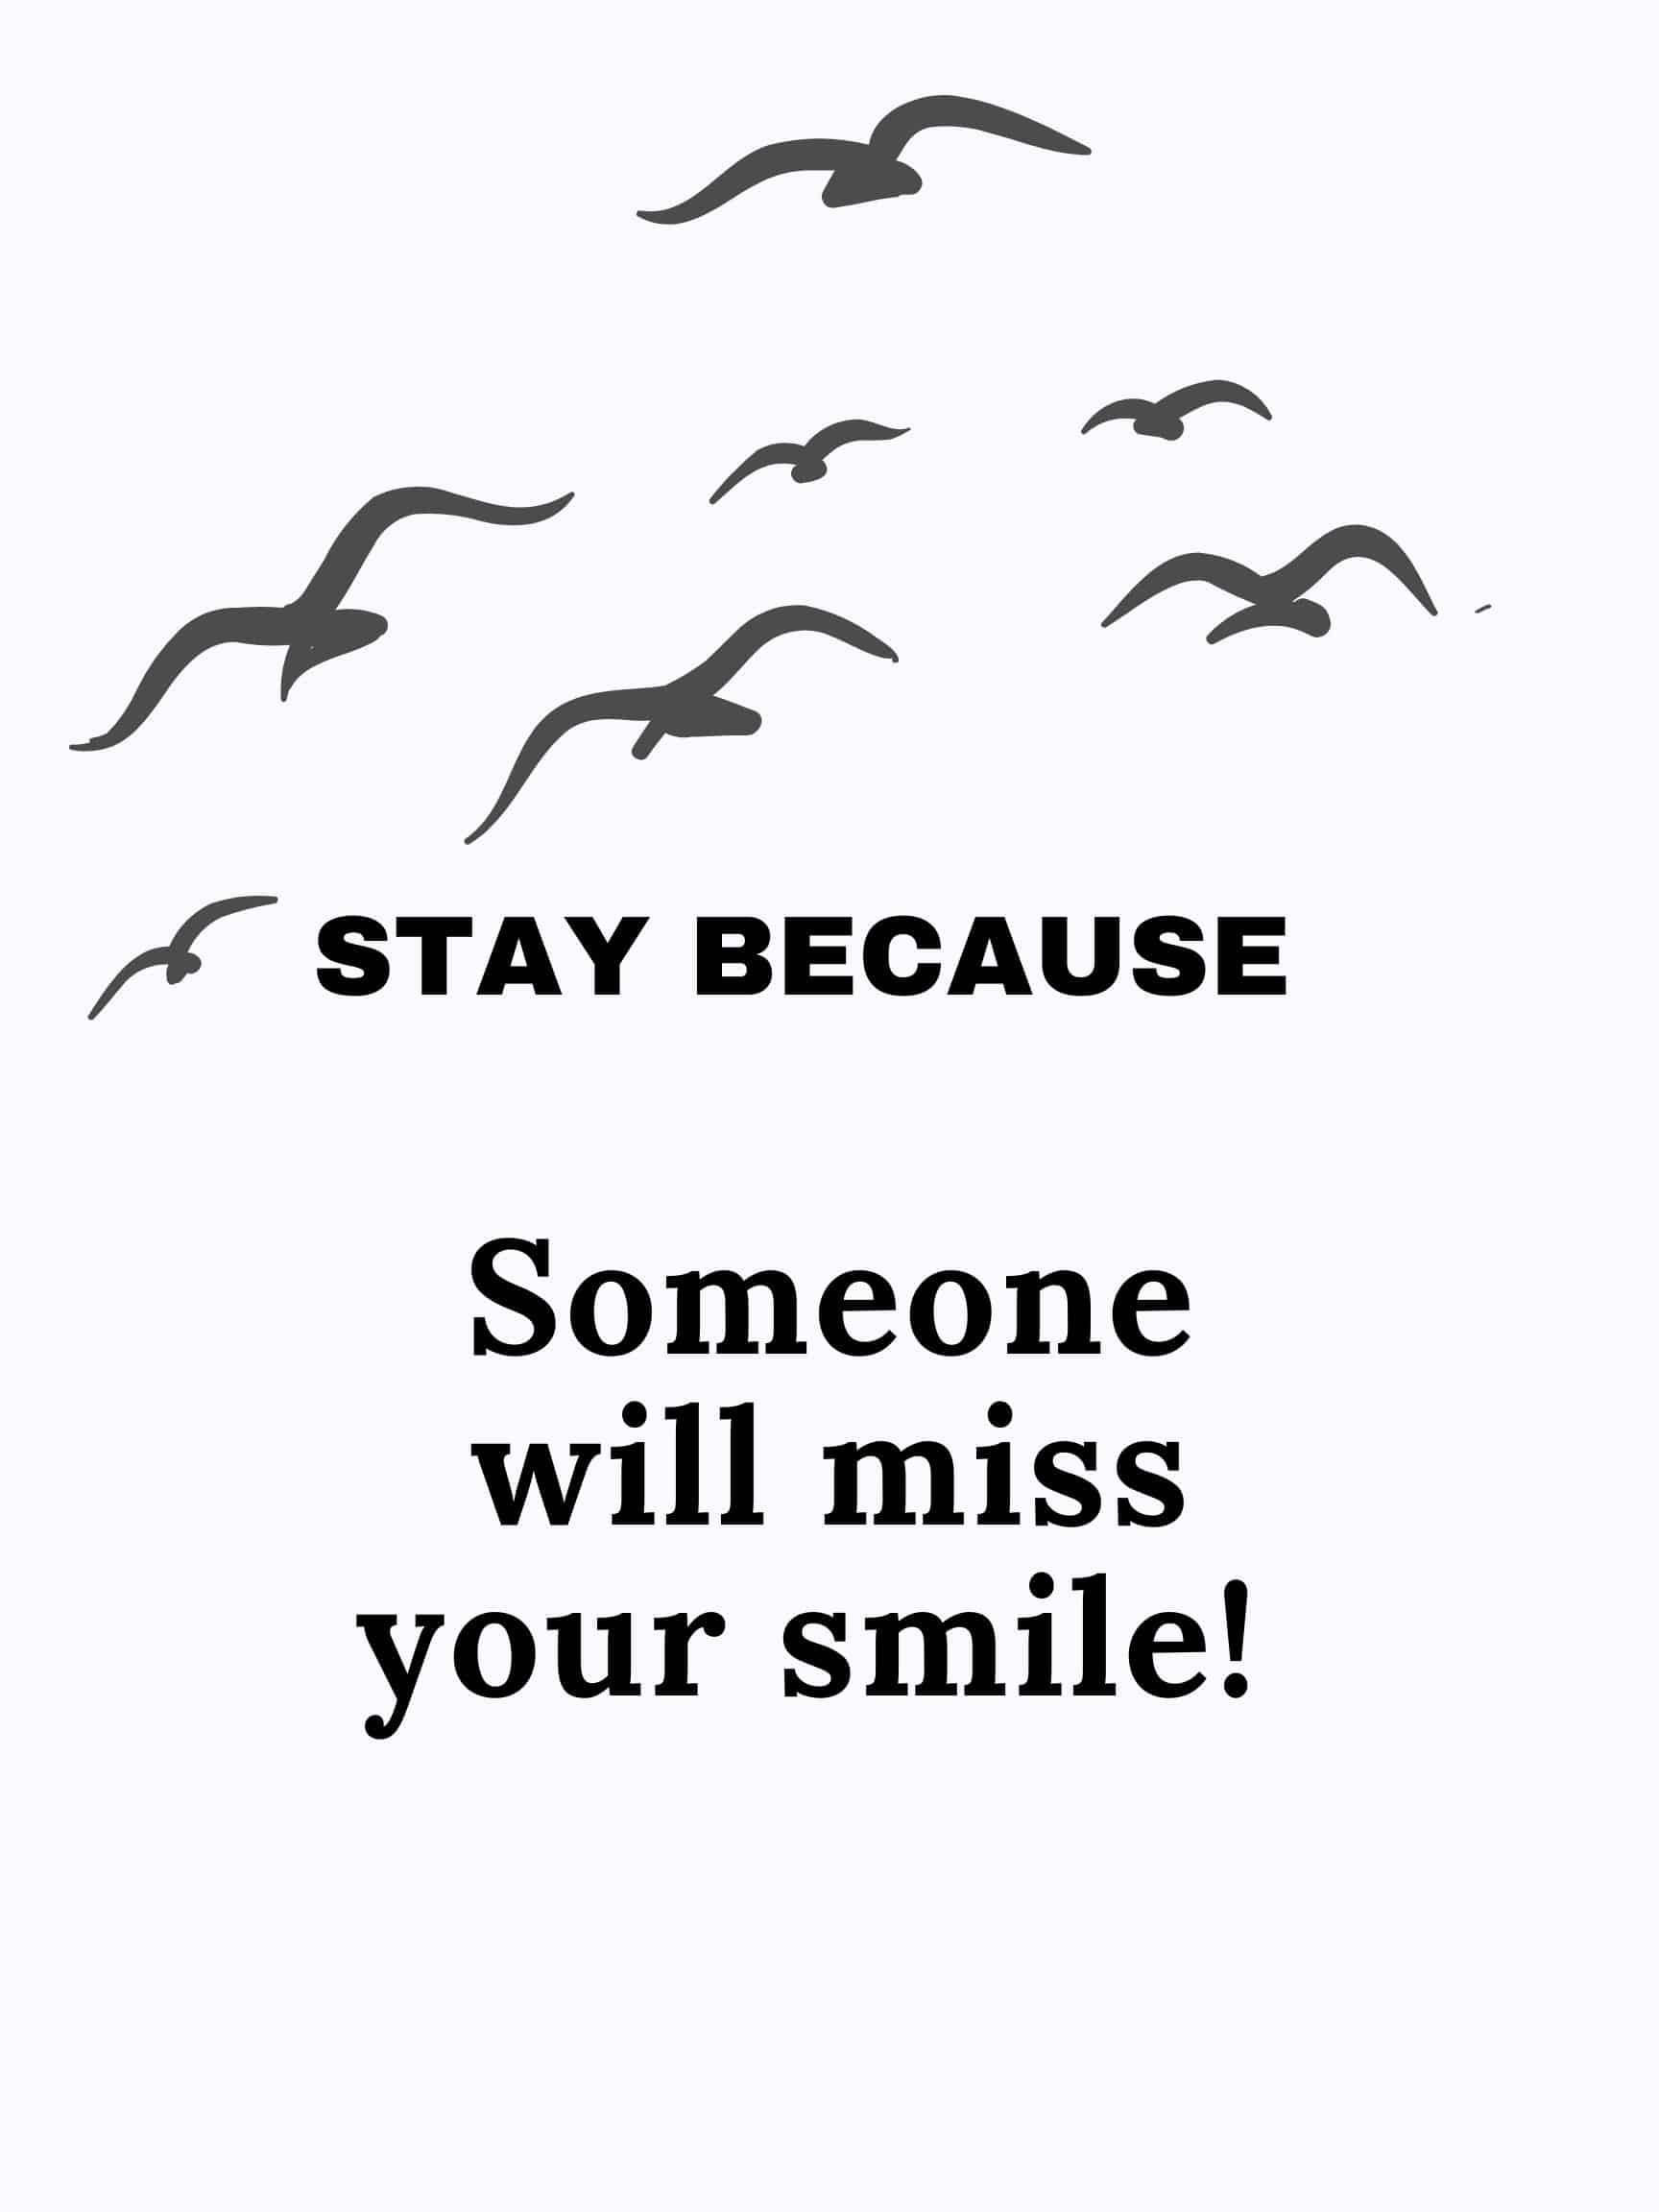 Stay because someone will miss your smile